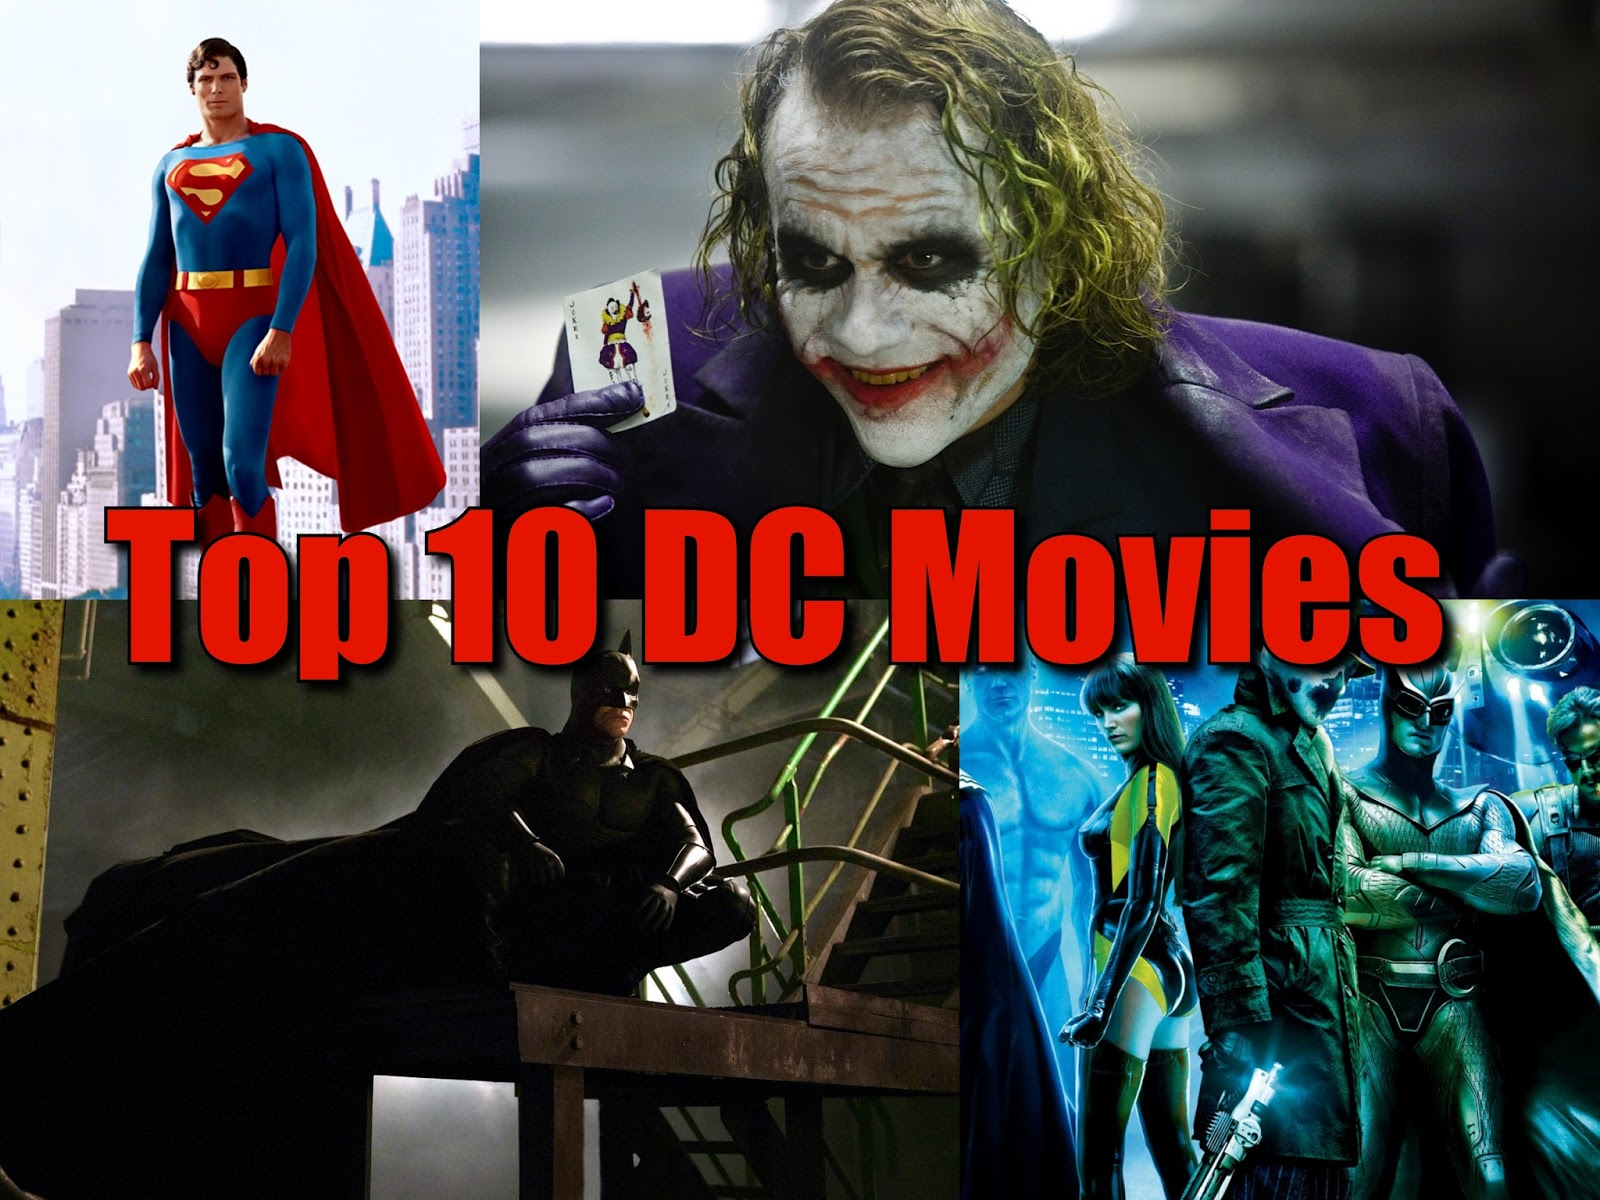 0 10 movies wiring diagram for trailer lights australia j and productions top dc comics part 2